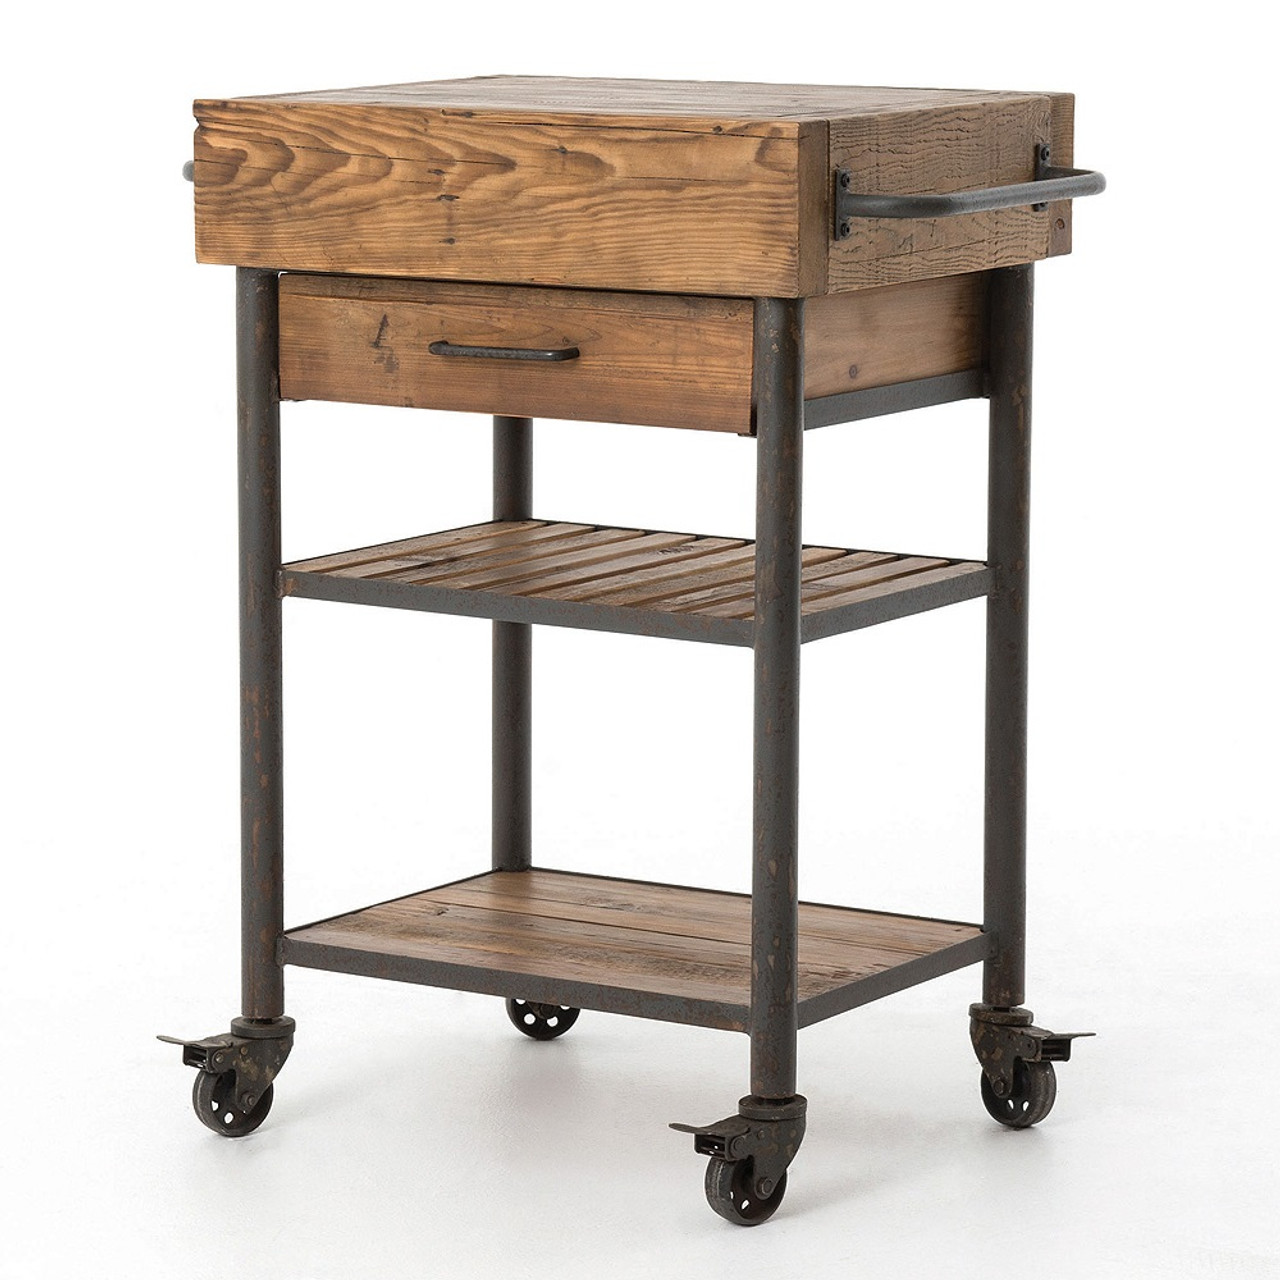 industrial reclaimed wood rolling kitchen island cart - Reclaimed Wood Kitchen Island